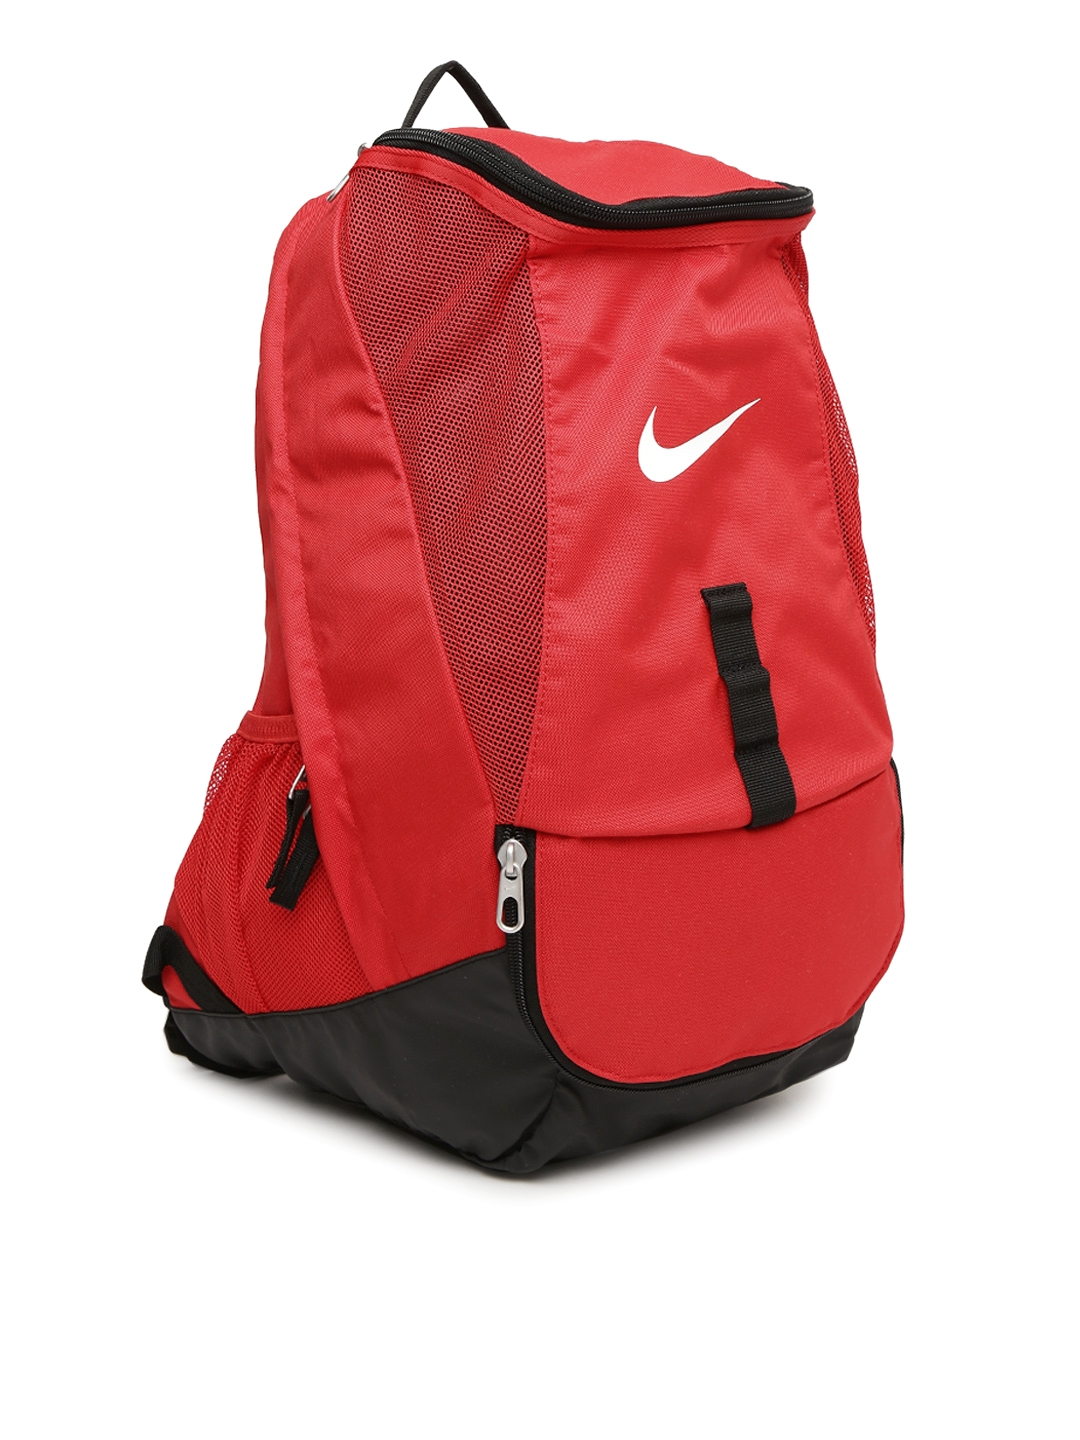 Buy Nike Men Red Solid CLUB TEAM Football Backpack - Backpacks for ... b1a133ec7e6f1